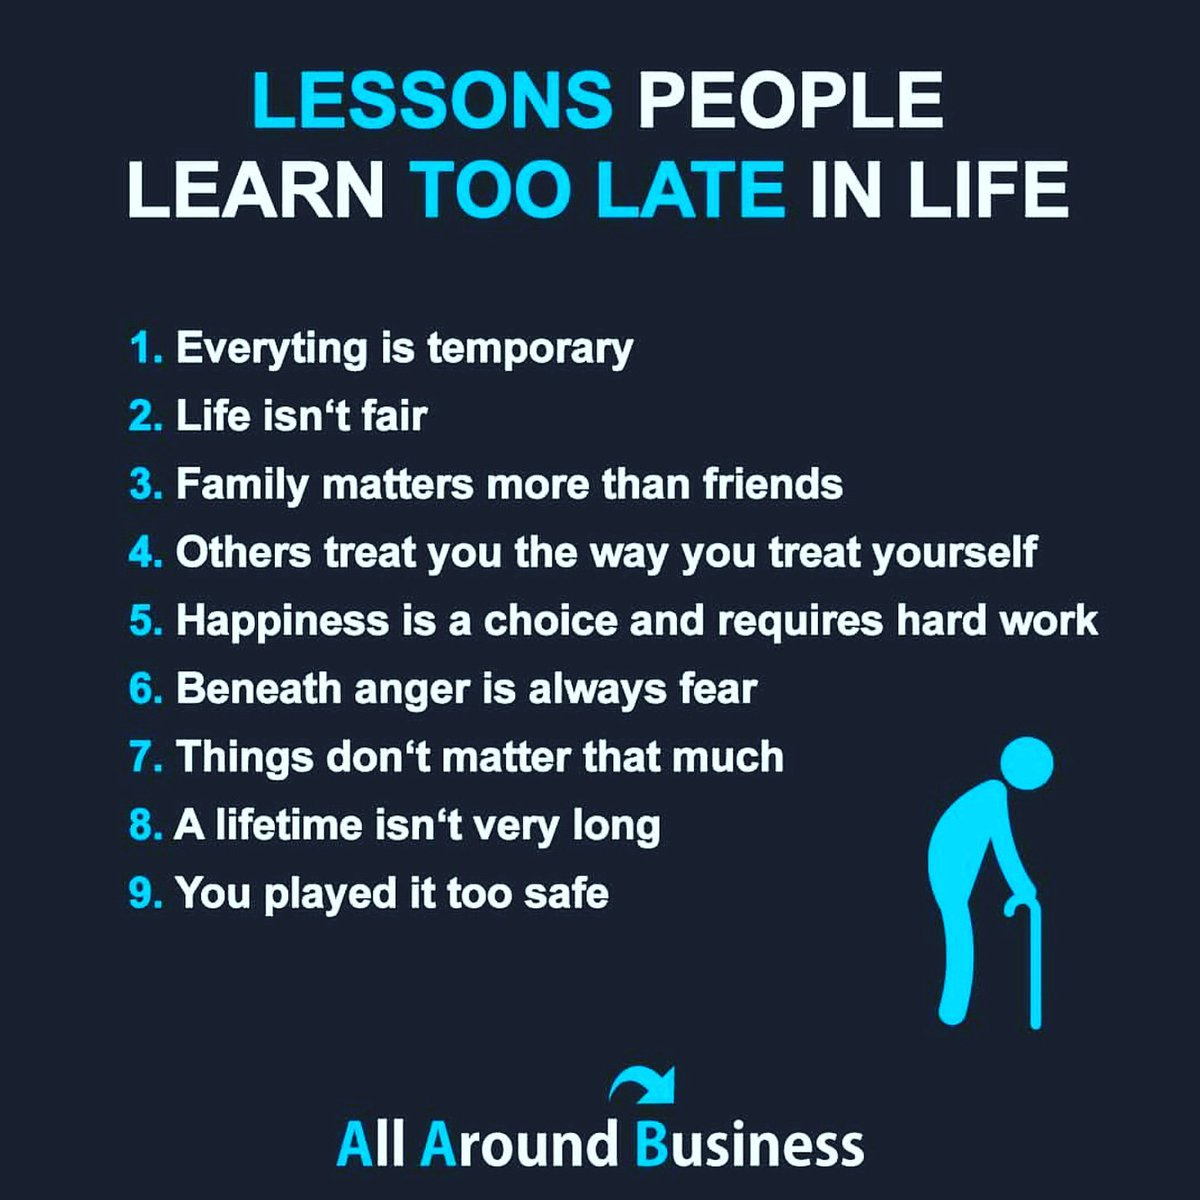 life lessons people learn too late